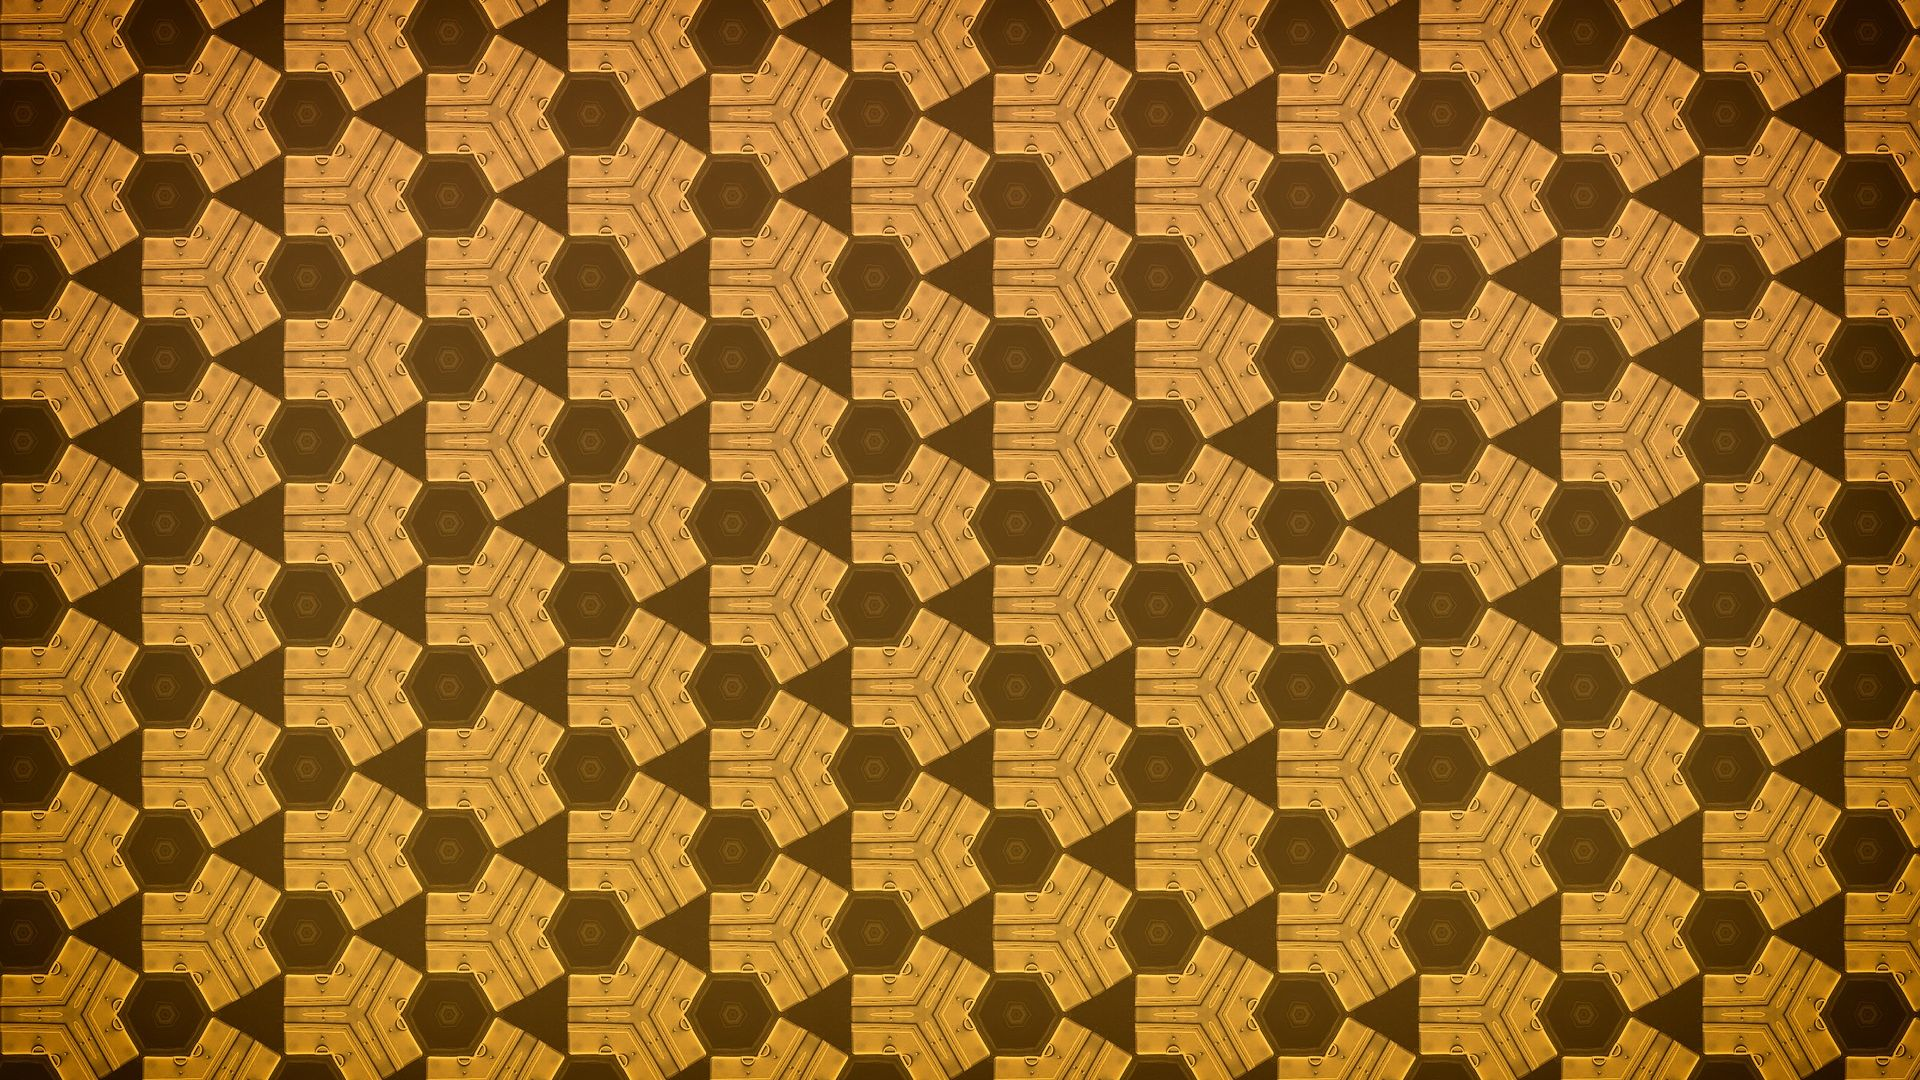 Wallpaper Triangles, hexagons, abstract, pattern